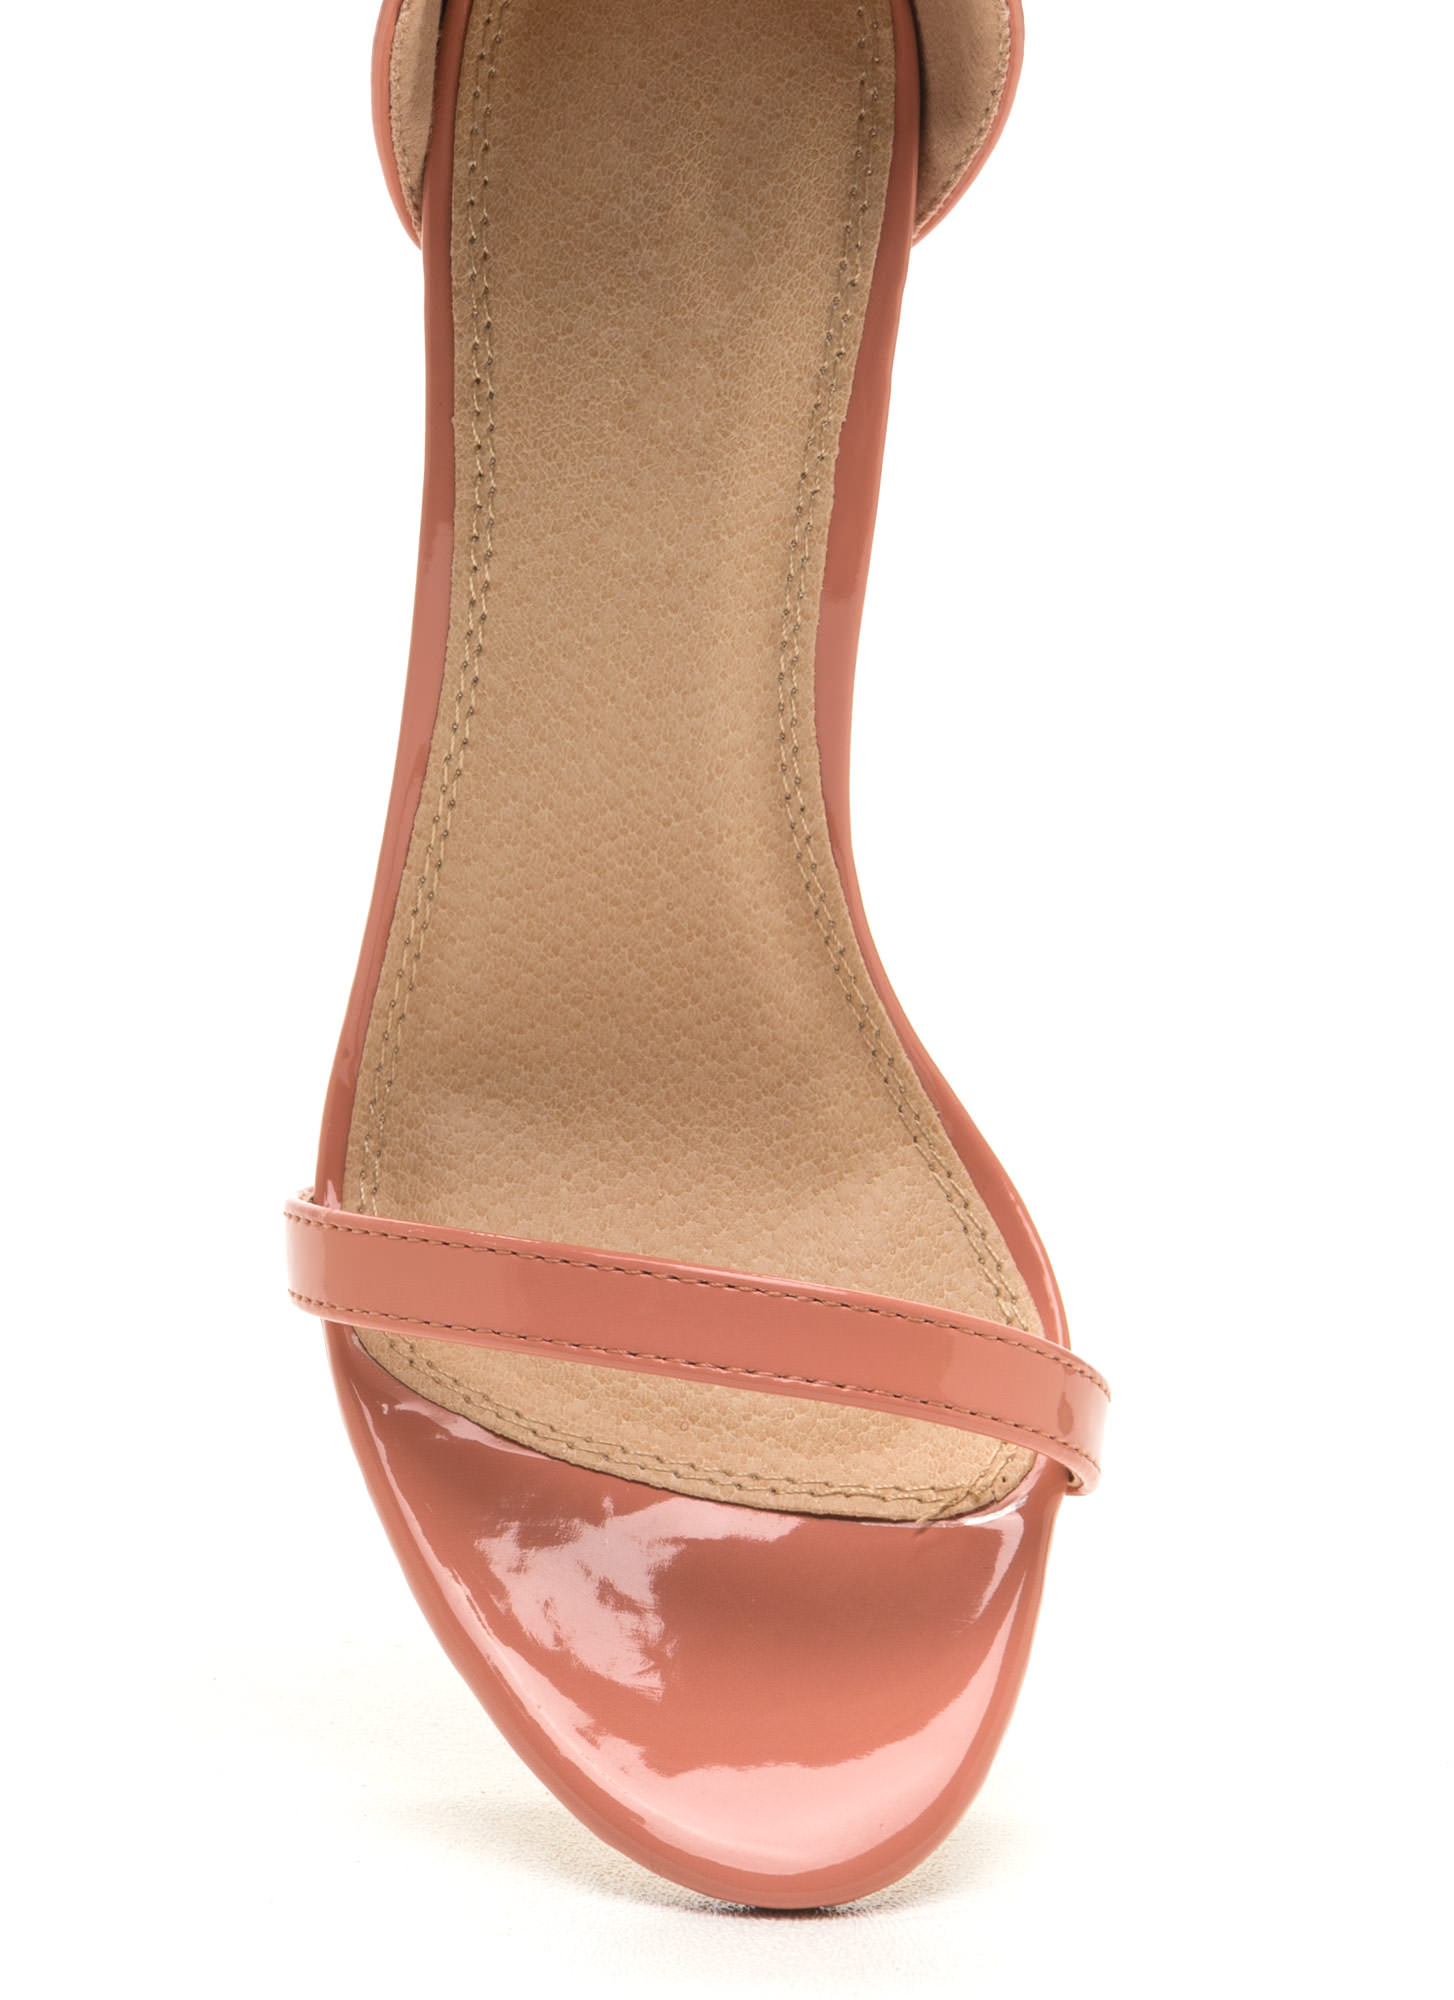 Skinny Feels Strappy Faux Patent Heels BLUSH